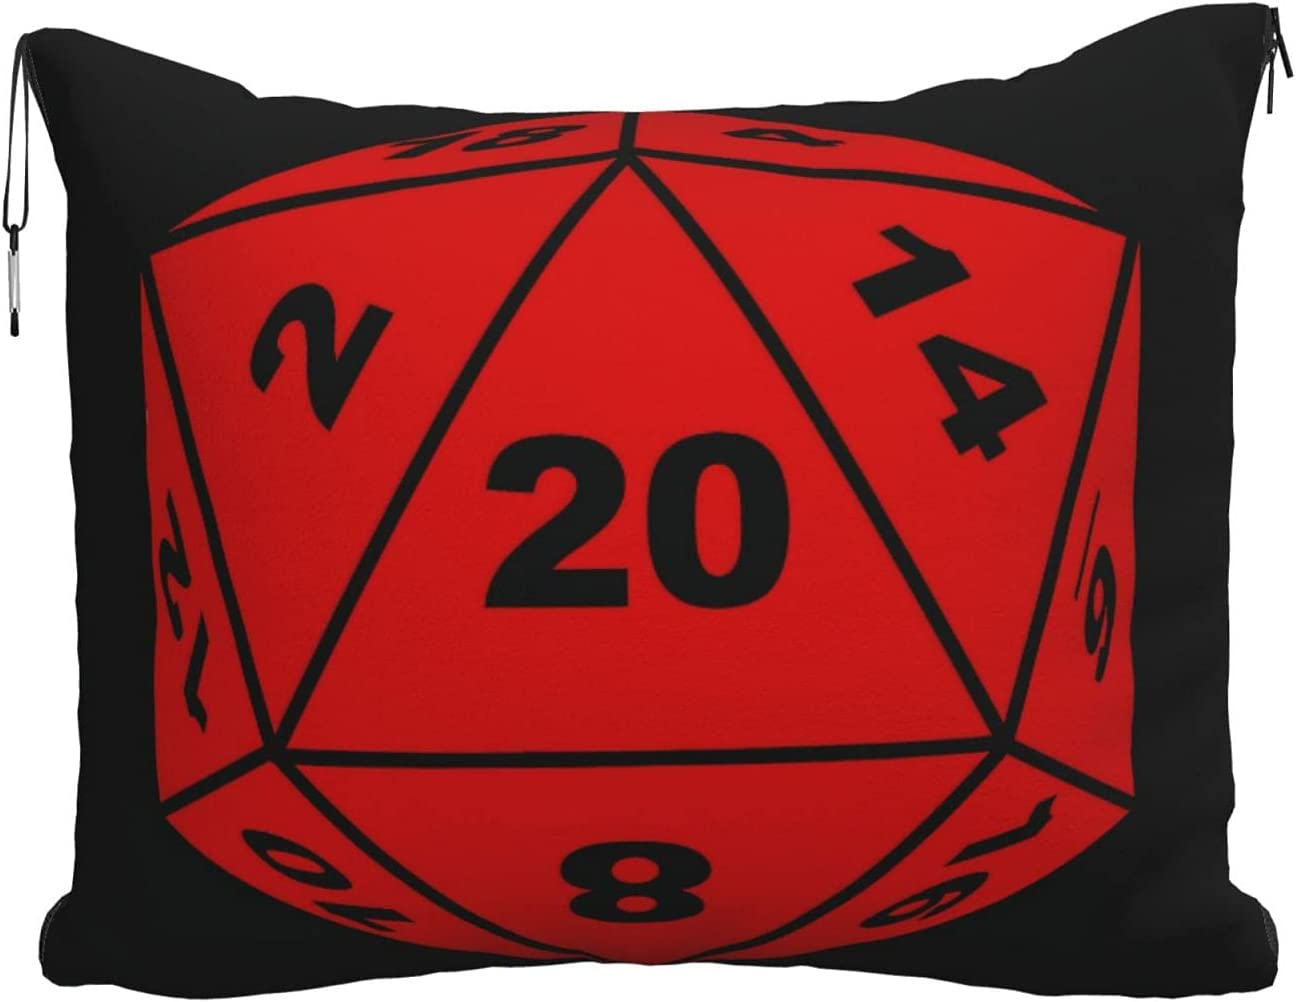 Dungeons Game Dragons Topics on TV Soft Max 66% OFF Travel Pillow Blanke Airplane Blanket